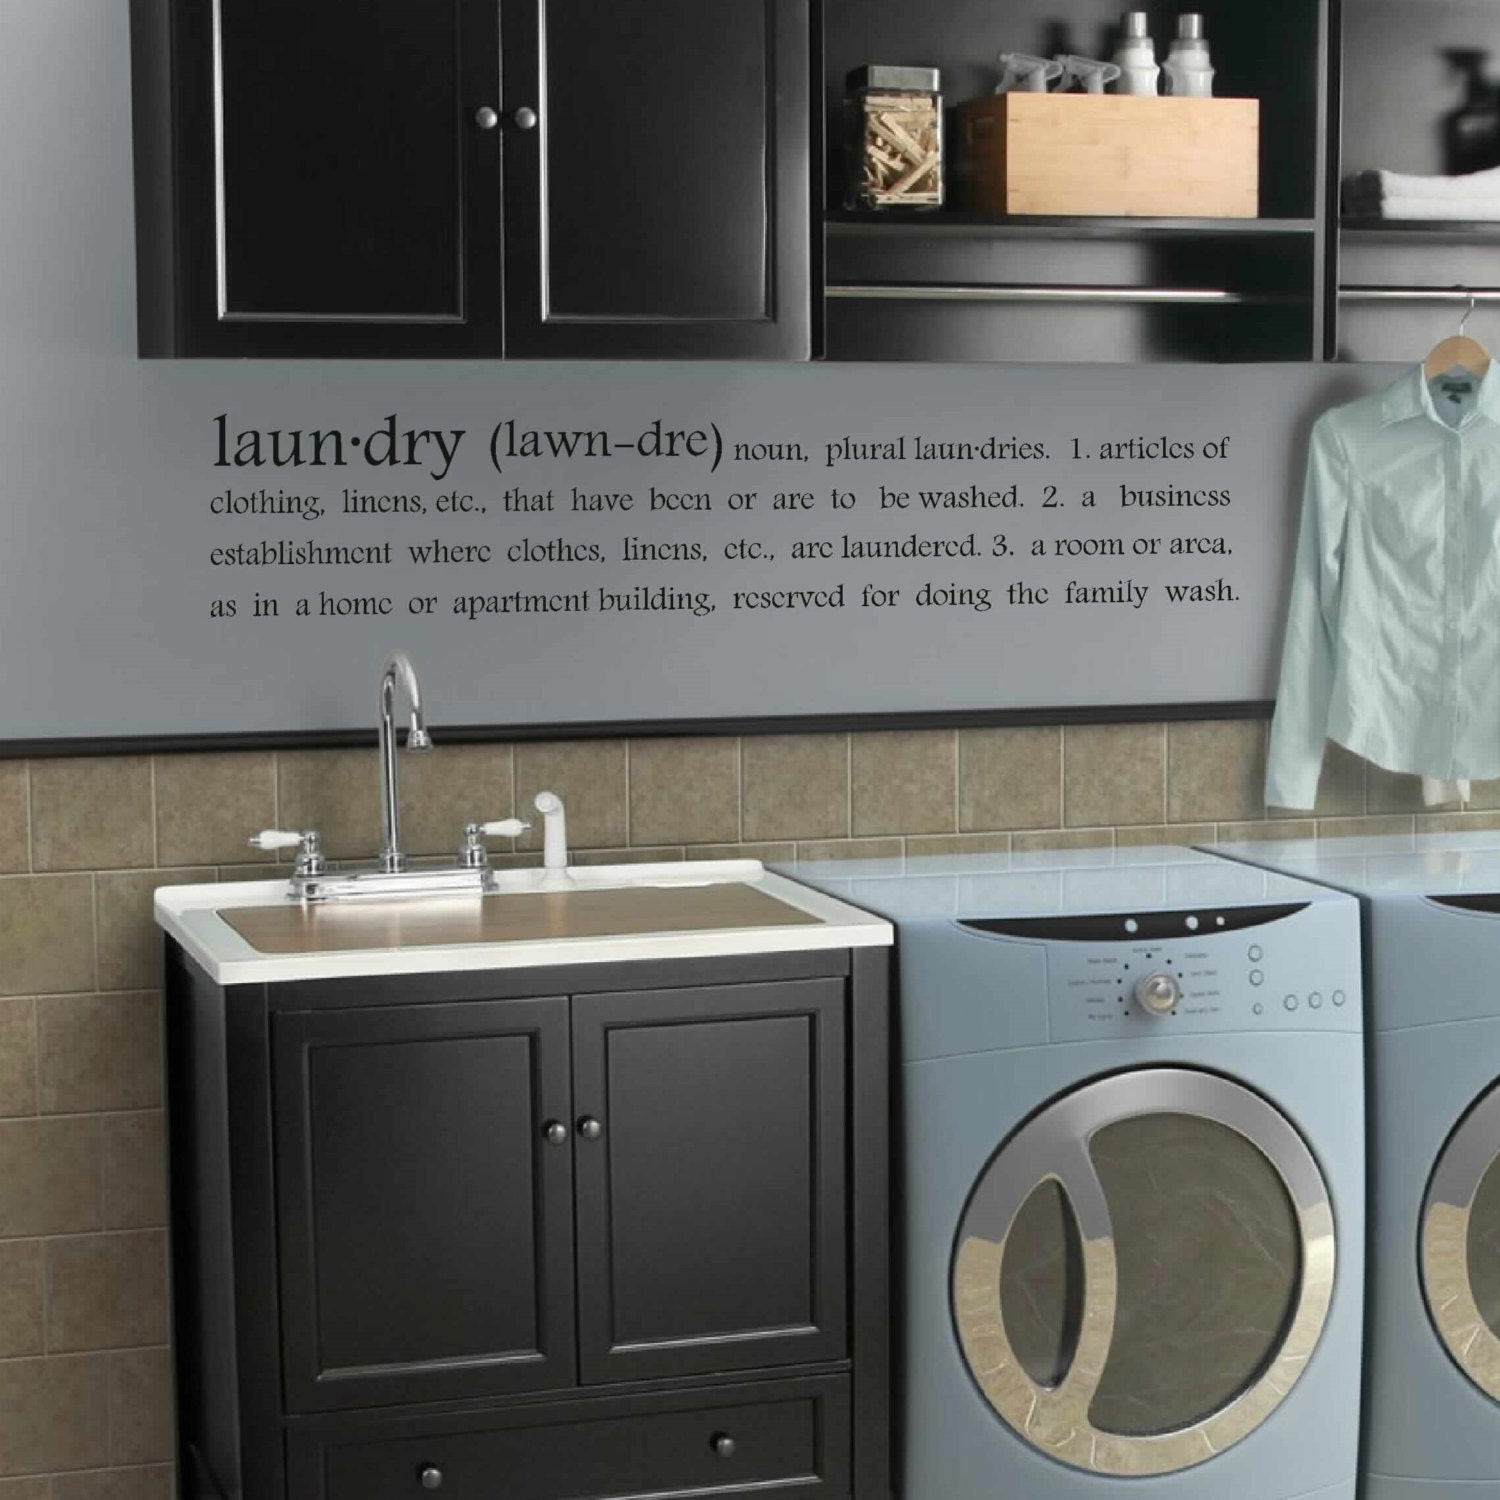 Laundry Decal Wall Decor Unique Subway Laundry Decor Laundry Room Decal Laundry Design Ideas